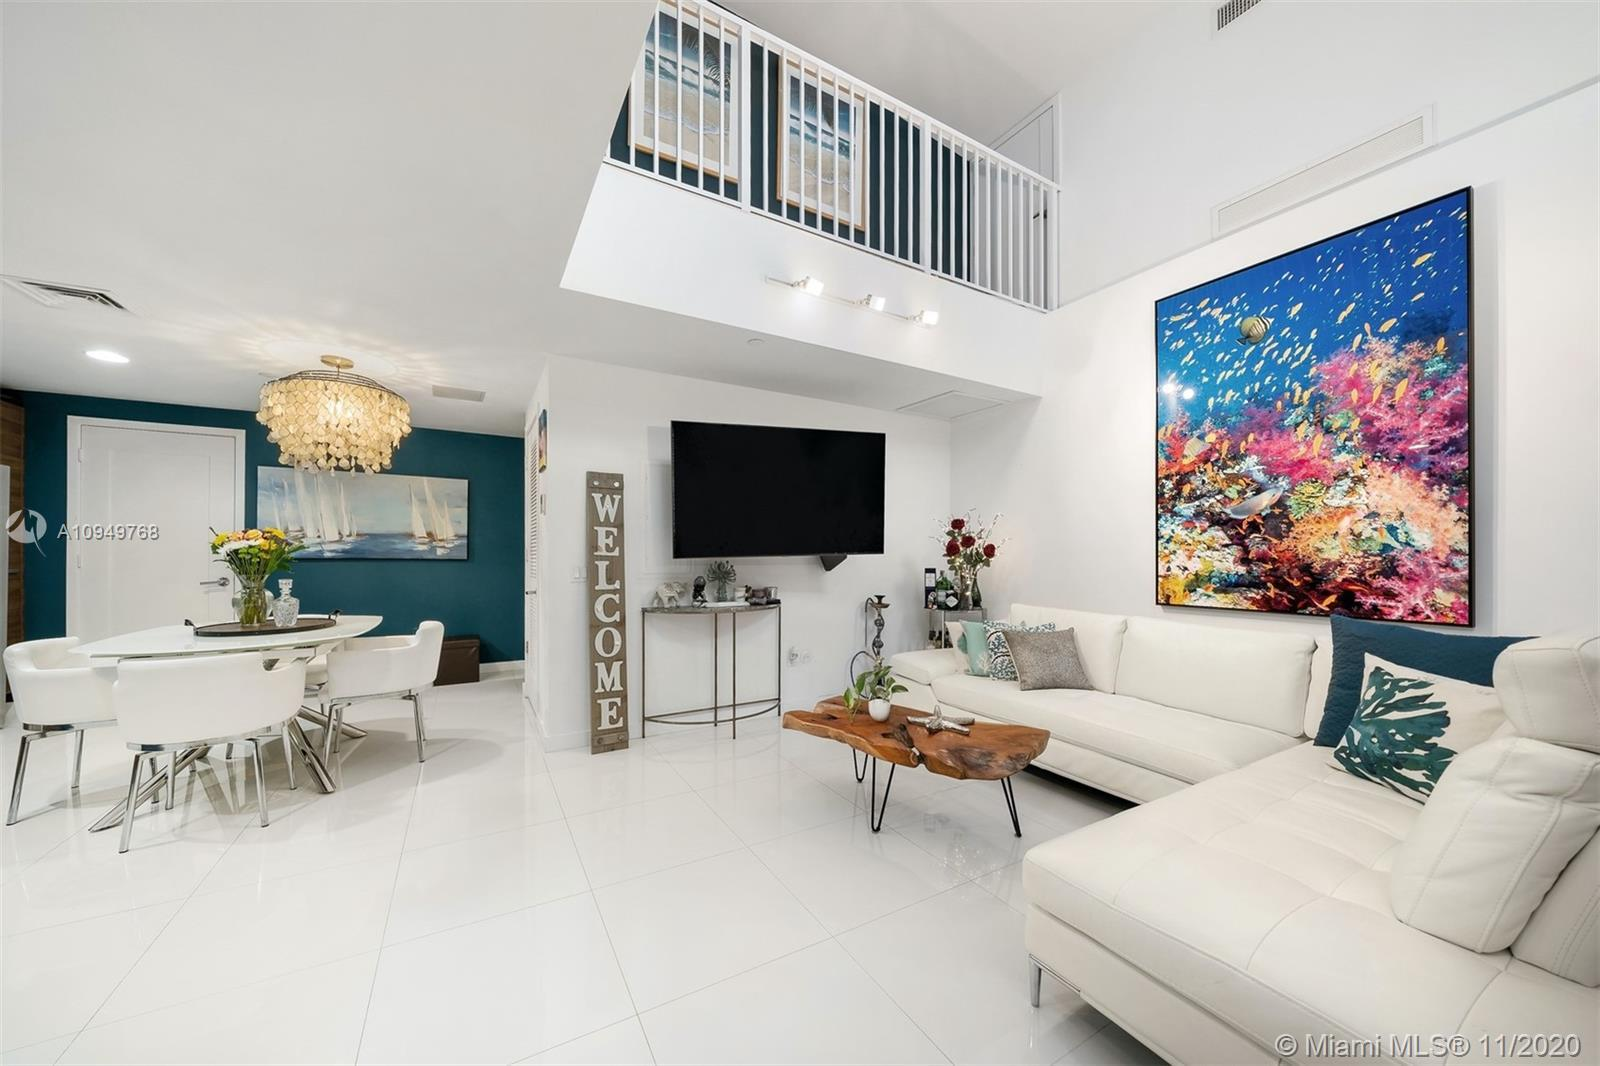 An immaculate 2-story townhouse at The Crimson in Edgewater w/ 1,149 interior square feet, 16.5-foot